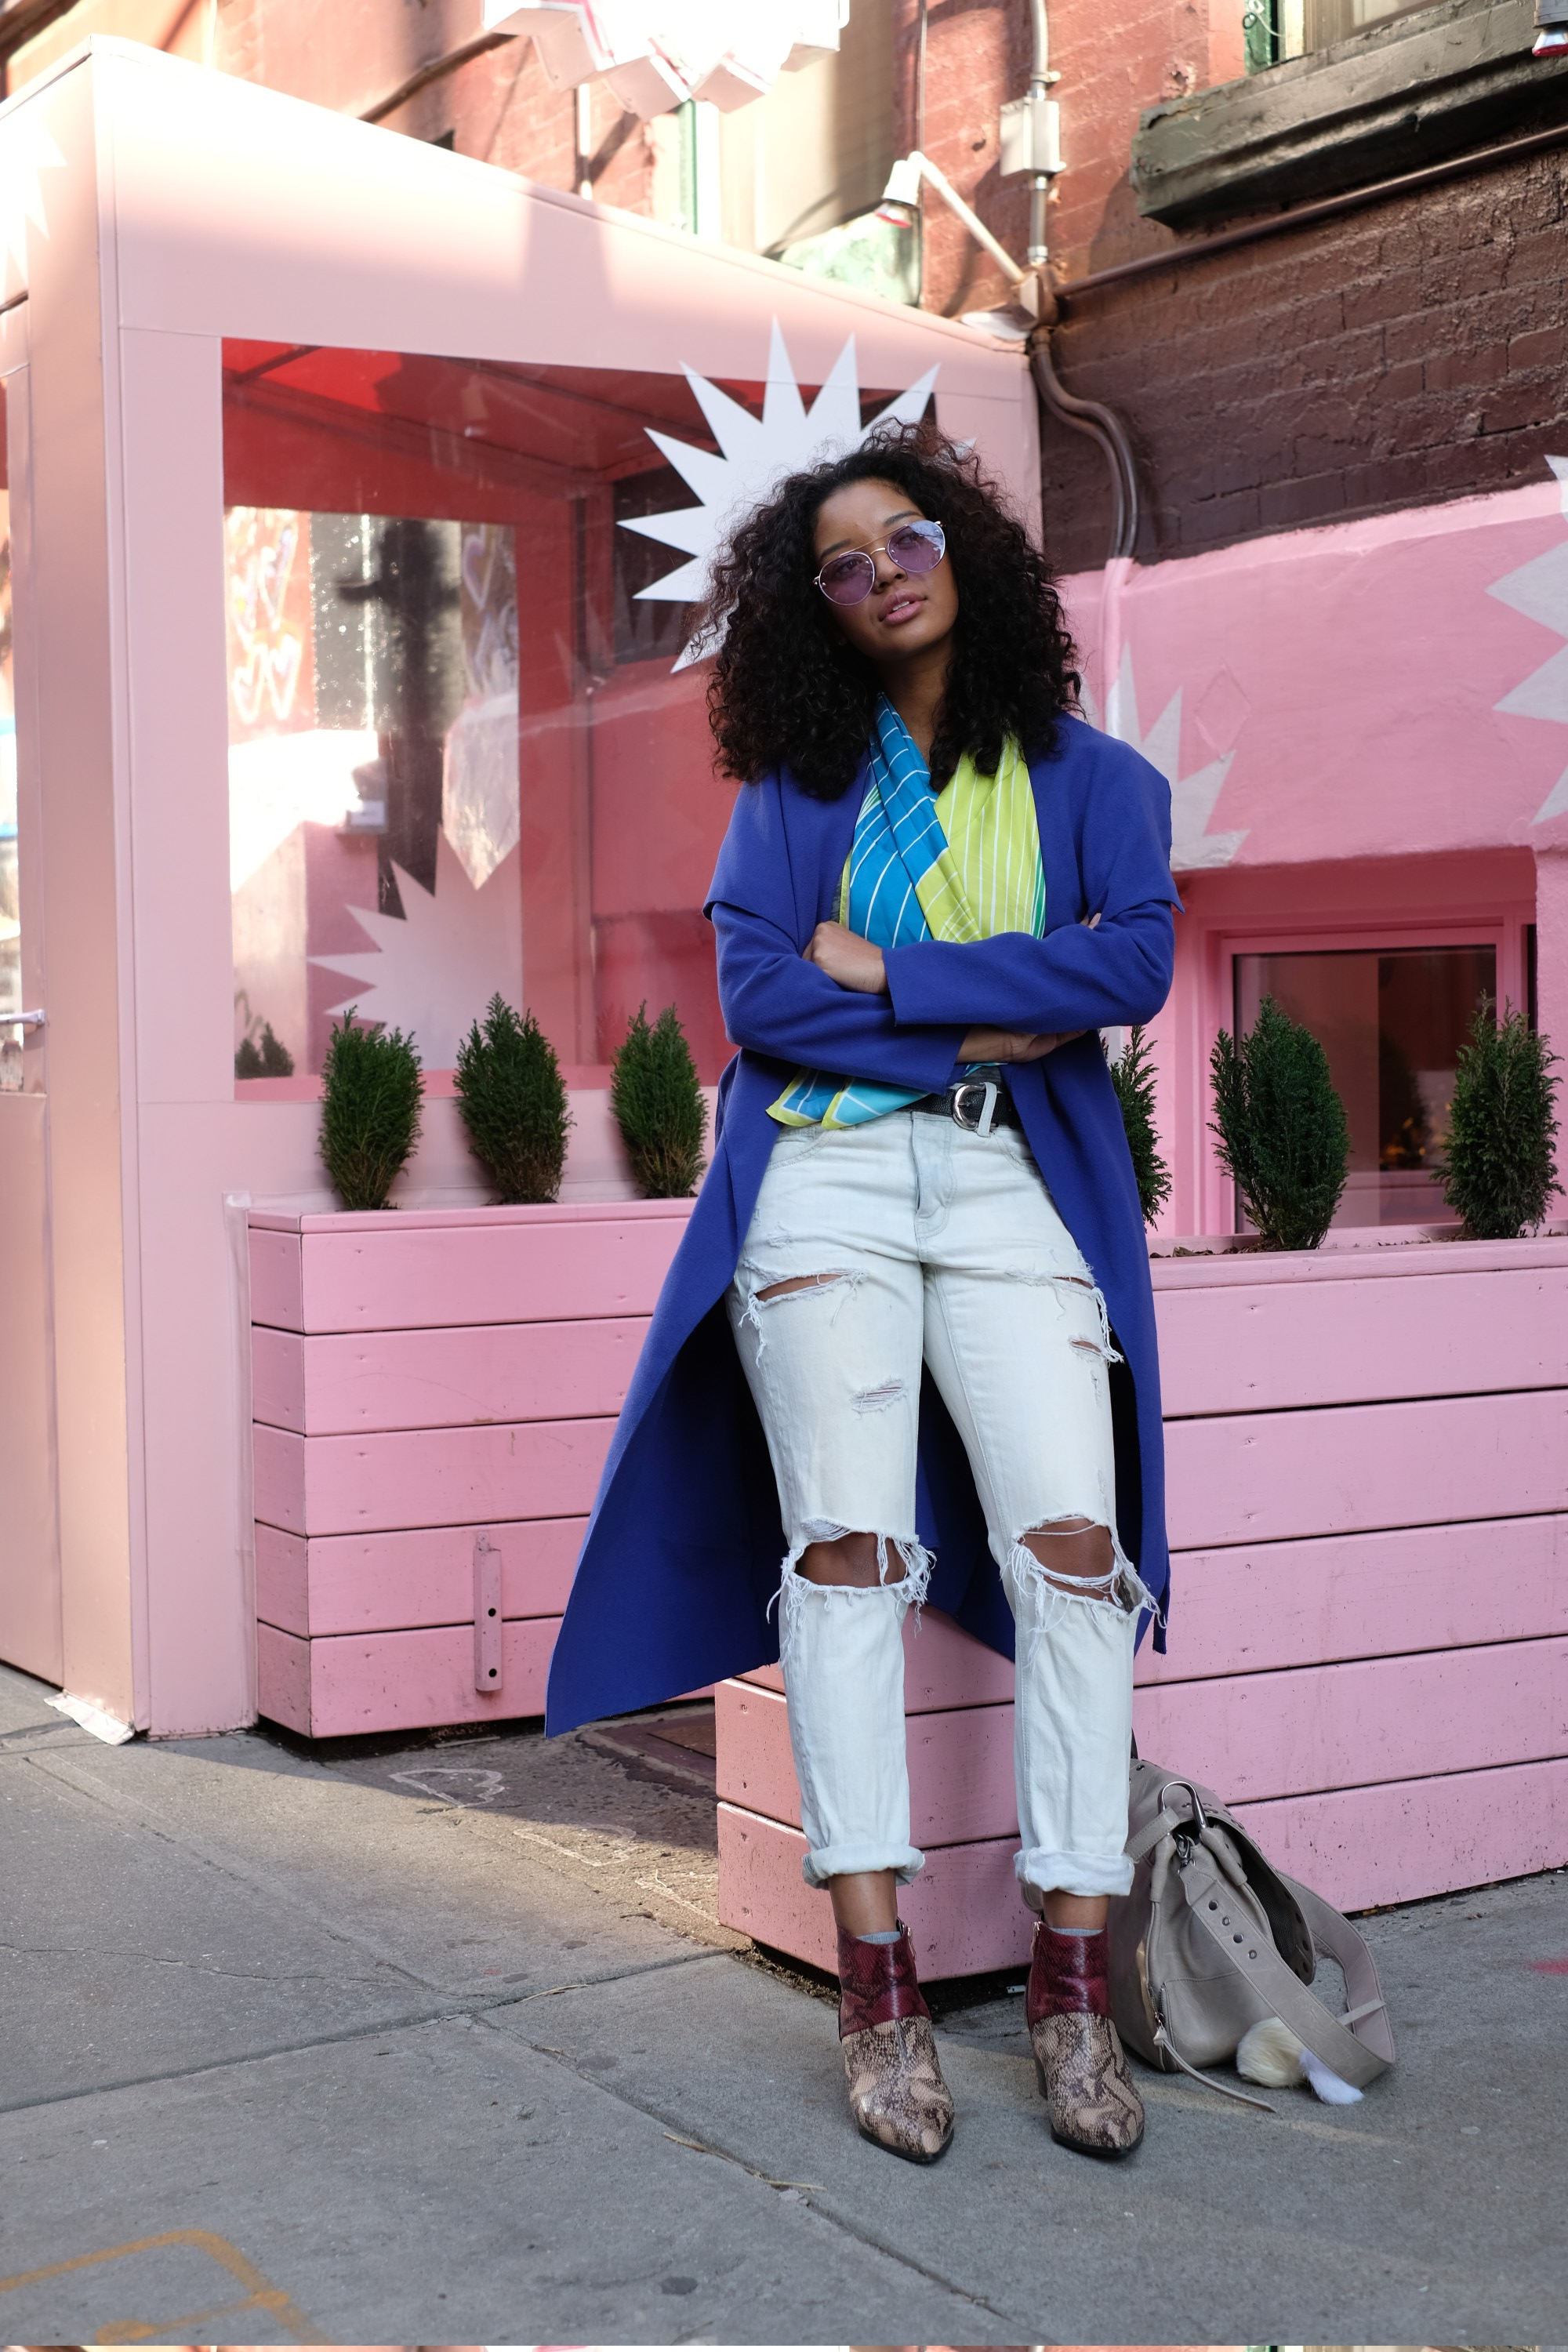 girl in blue coat by pink storefront